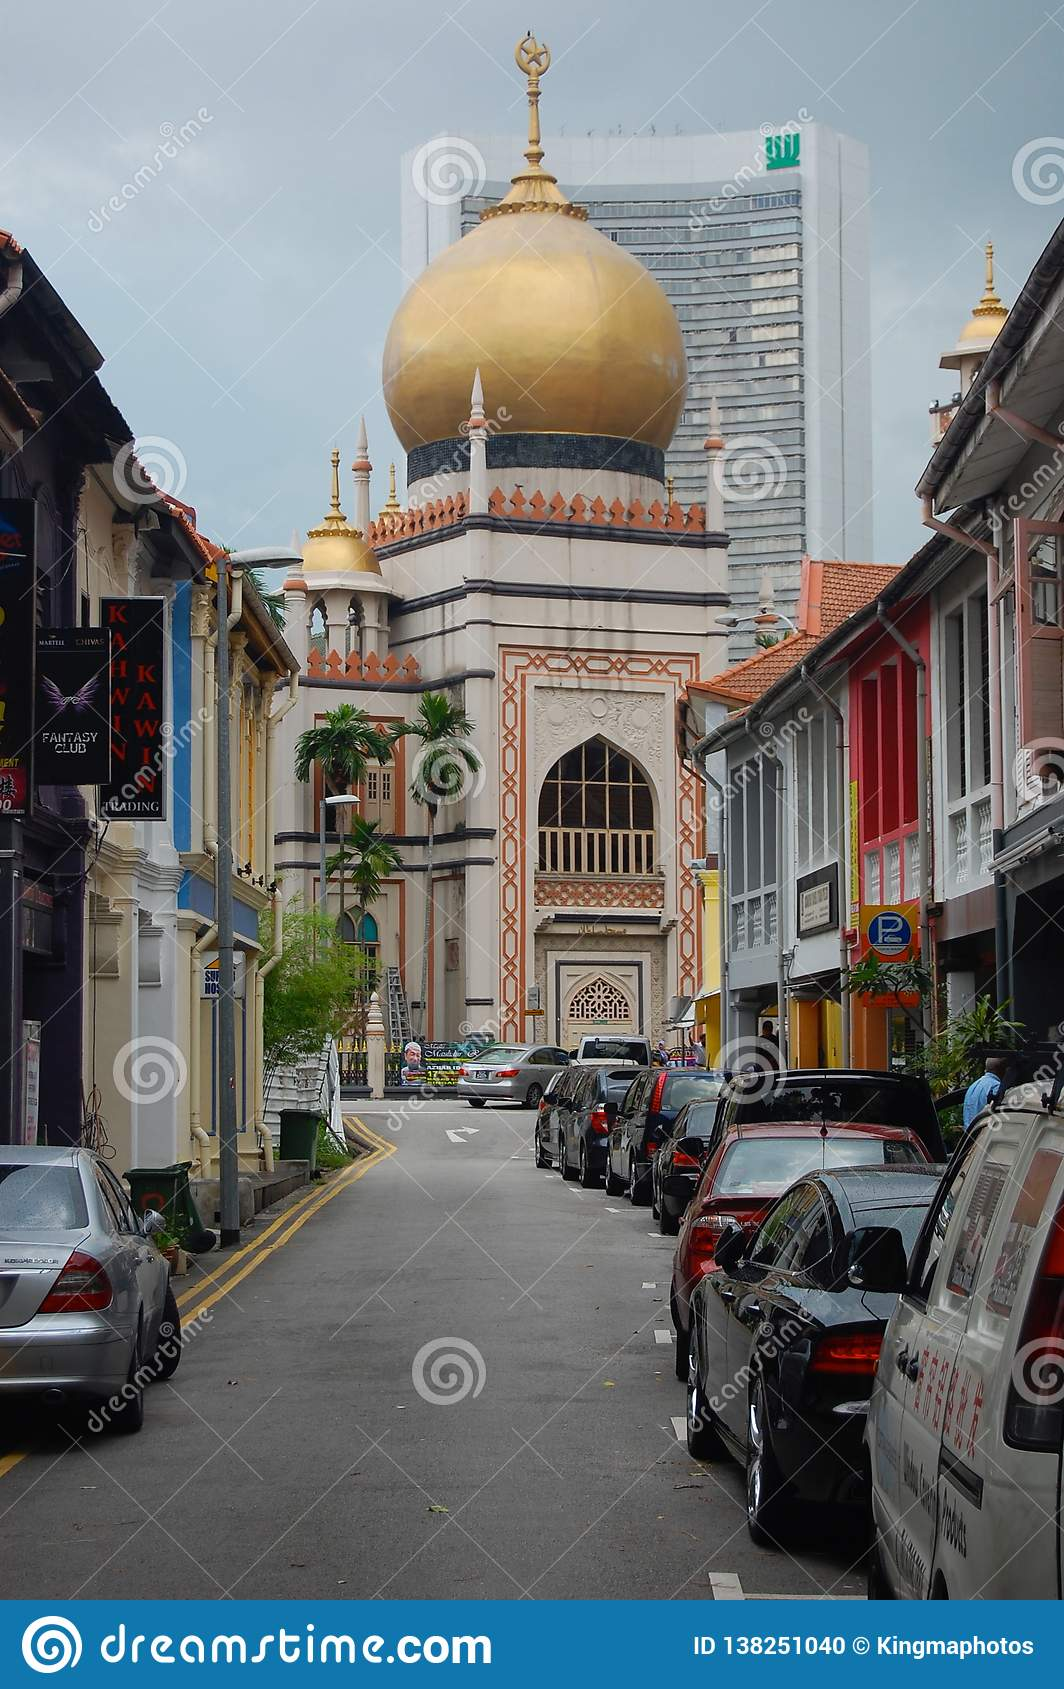 Muslim Quarter in Singapore on a partly cloudy day showing off the streets and mosque attraction for the Muslim population an